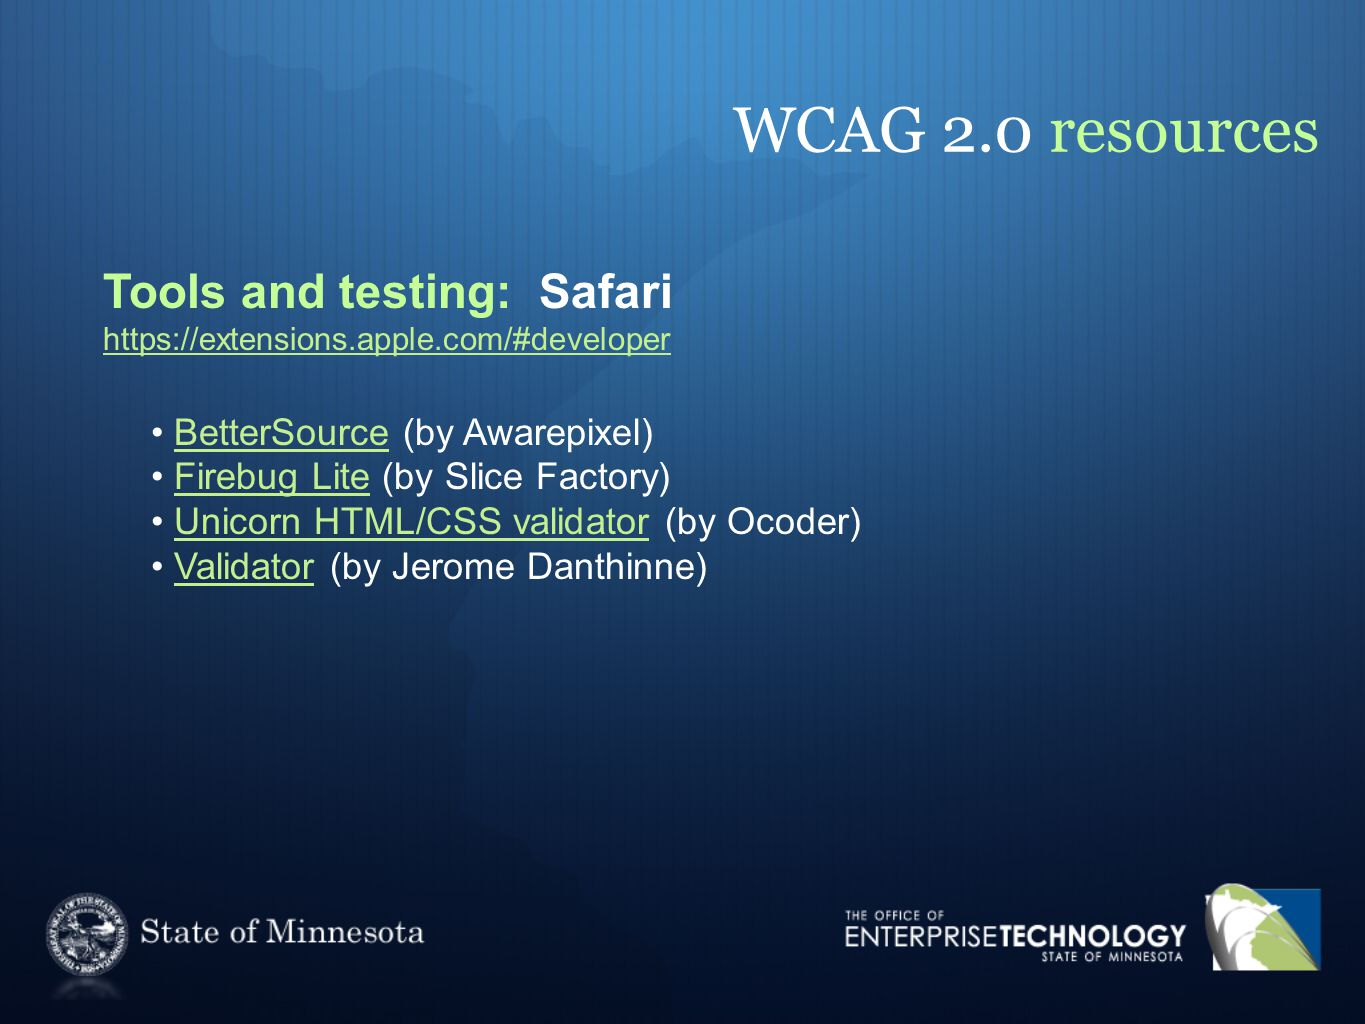 WCAG 2.0 resources Tools and testing: Safari https://extensions.apple.com/#developer https://extensions.apple.com/#developer BetterSource (by Awarepixel)BetterSource Firebug Lite (by Slice Factory)Firebug Lite Unicorn HTML/CSS validator (by Ocoder)Unicorn HTML/CSS validator Validator (by Jerome Danthinne)Validator